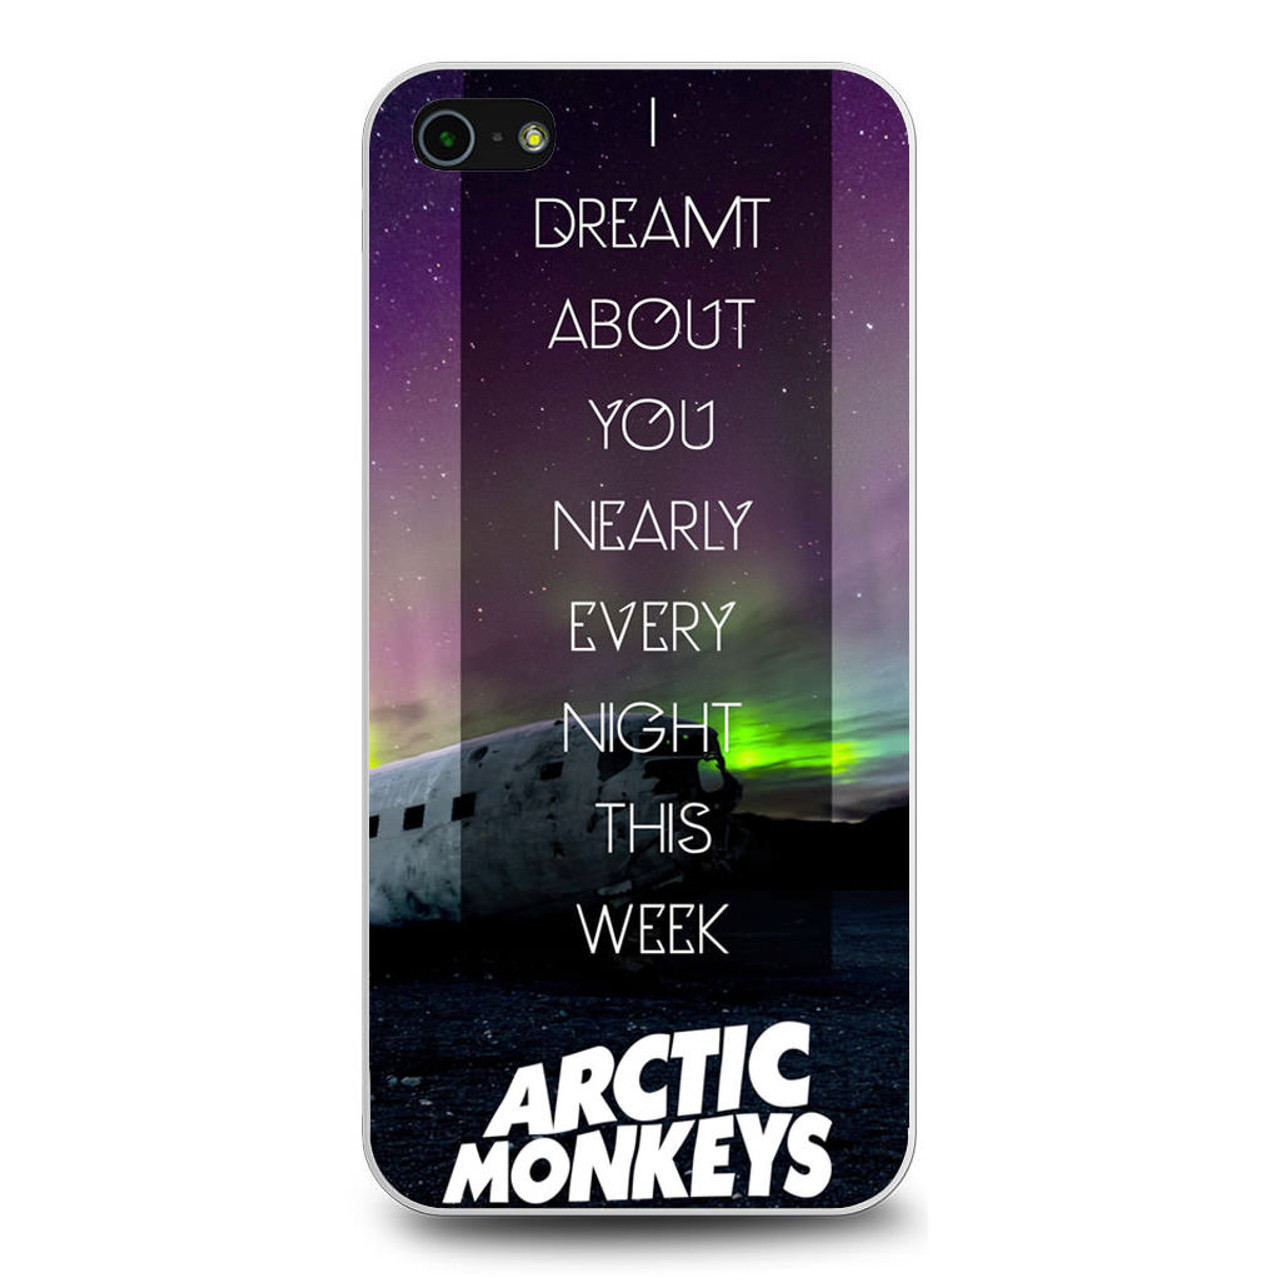 Arctic Monkeys 2 iphone case